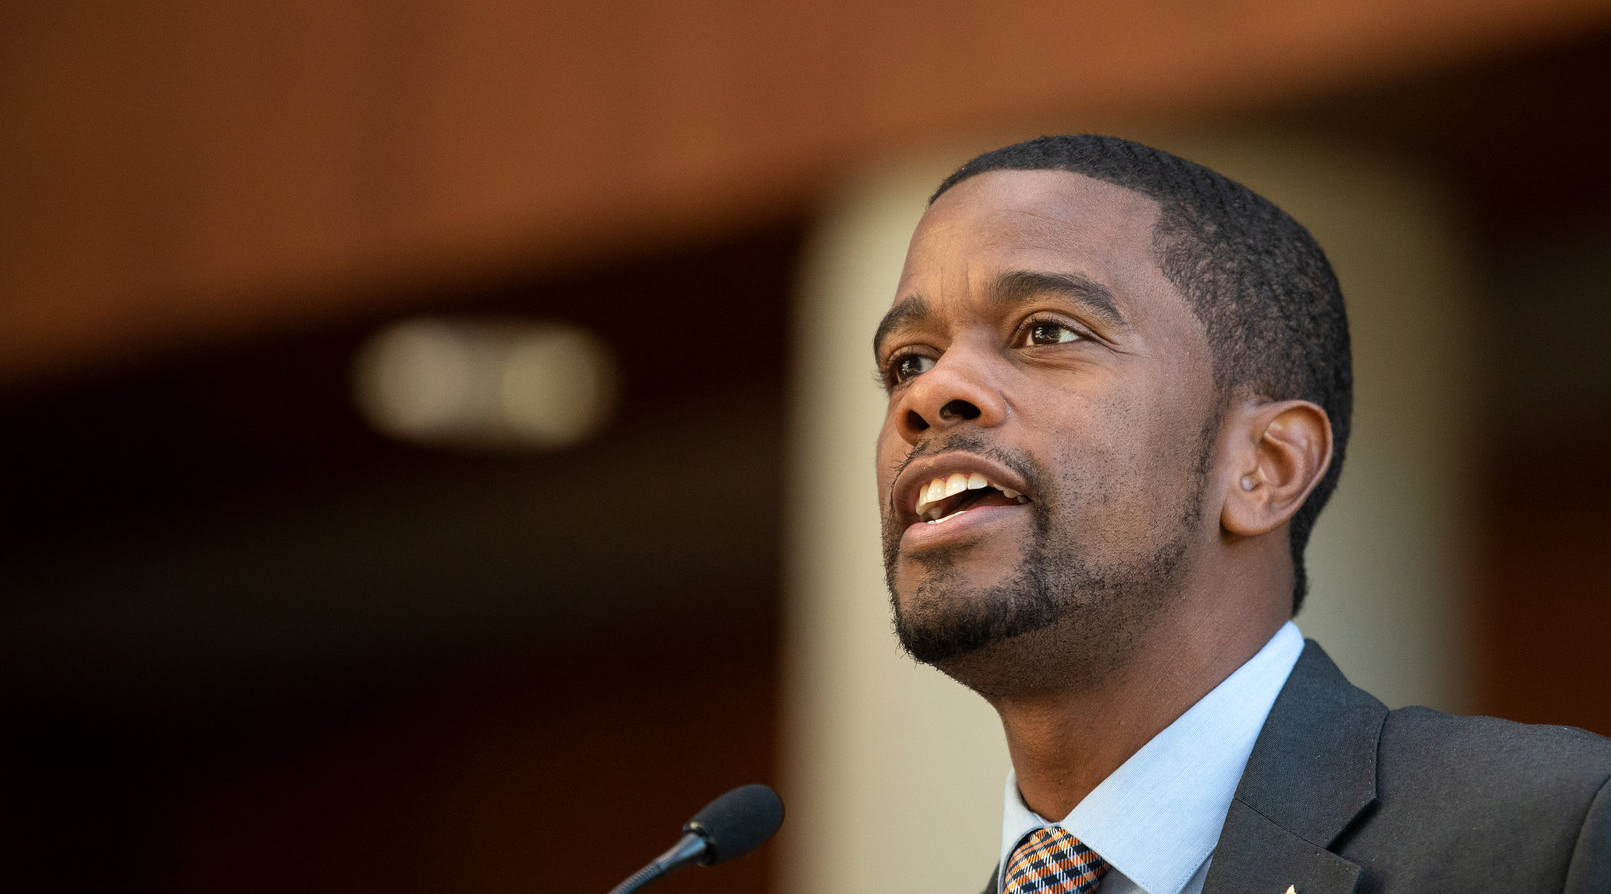 melvin carter speaking in the st. thomas law school atrium